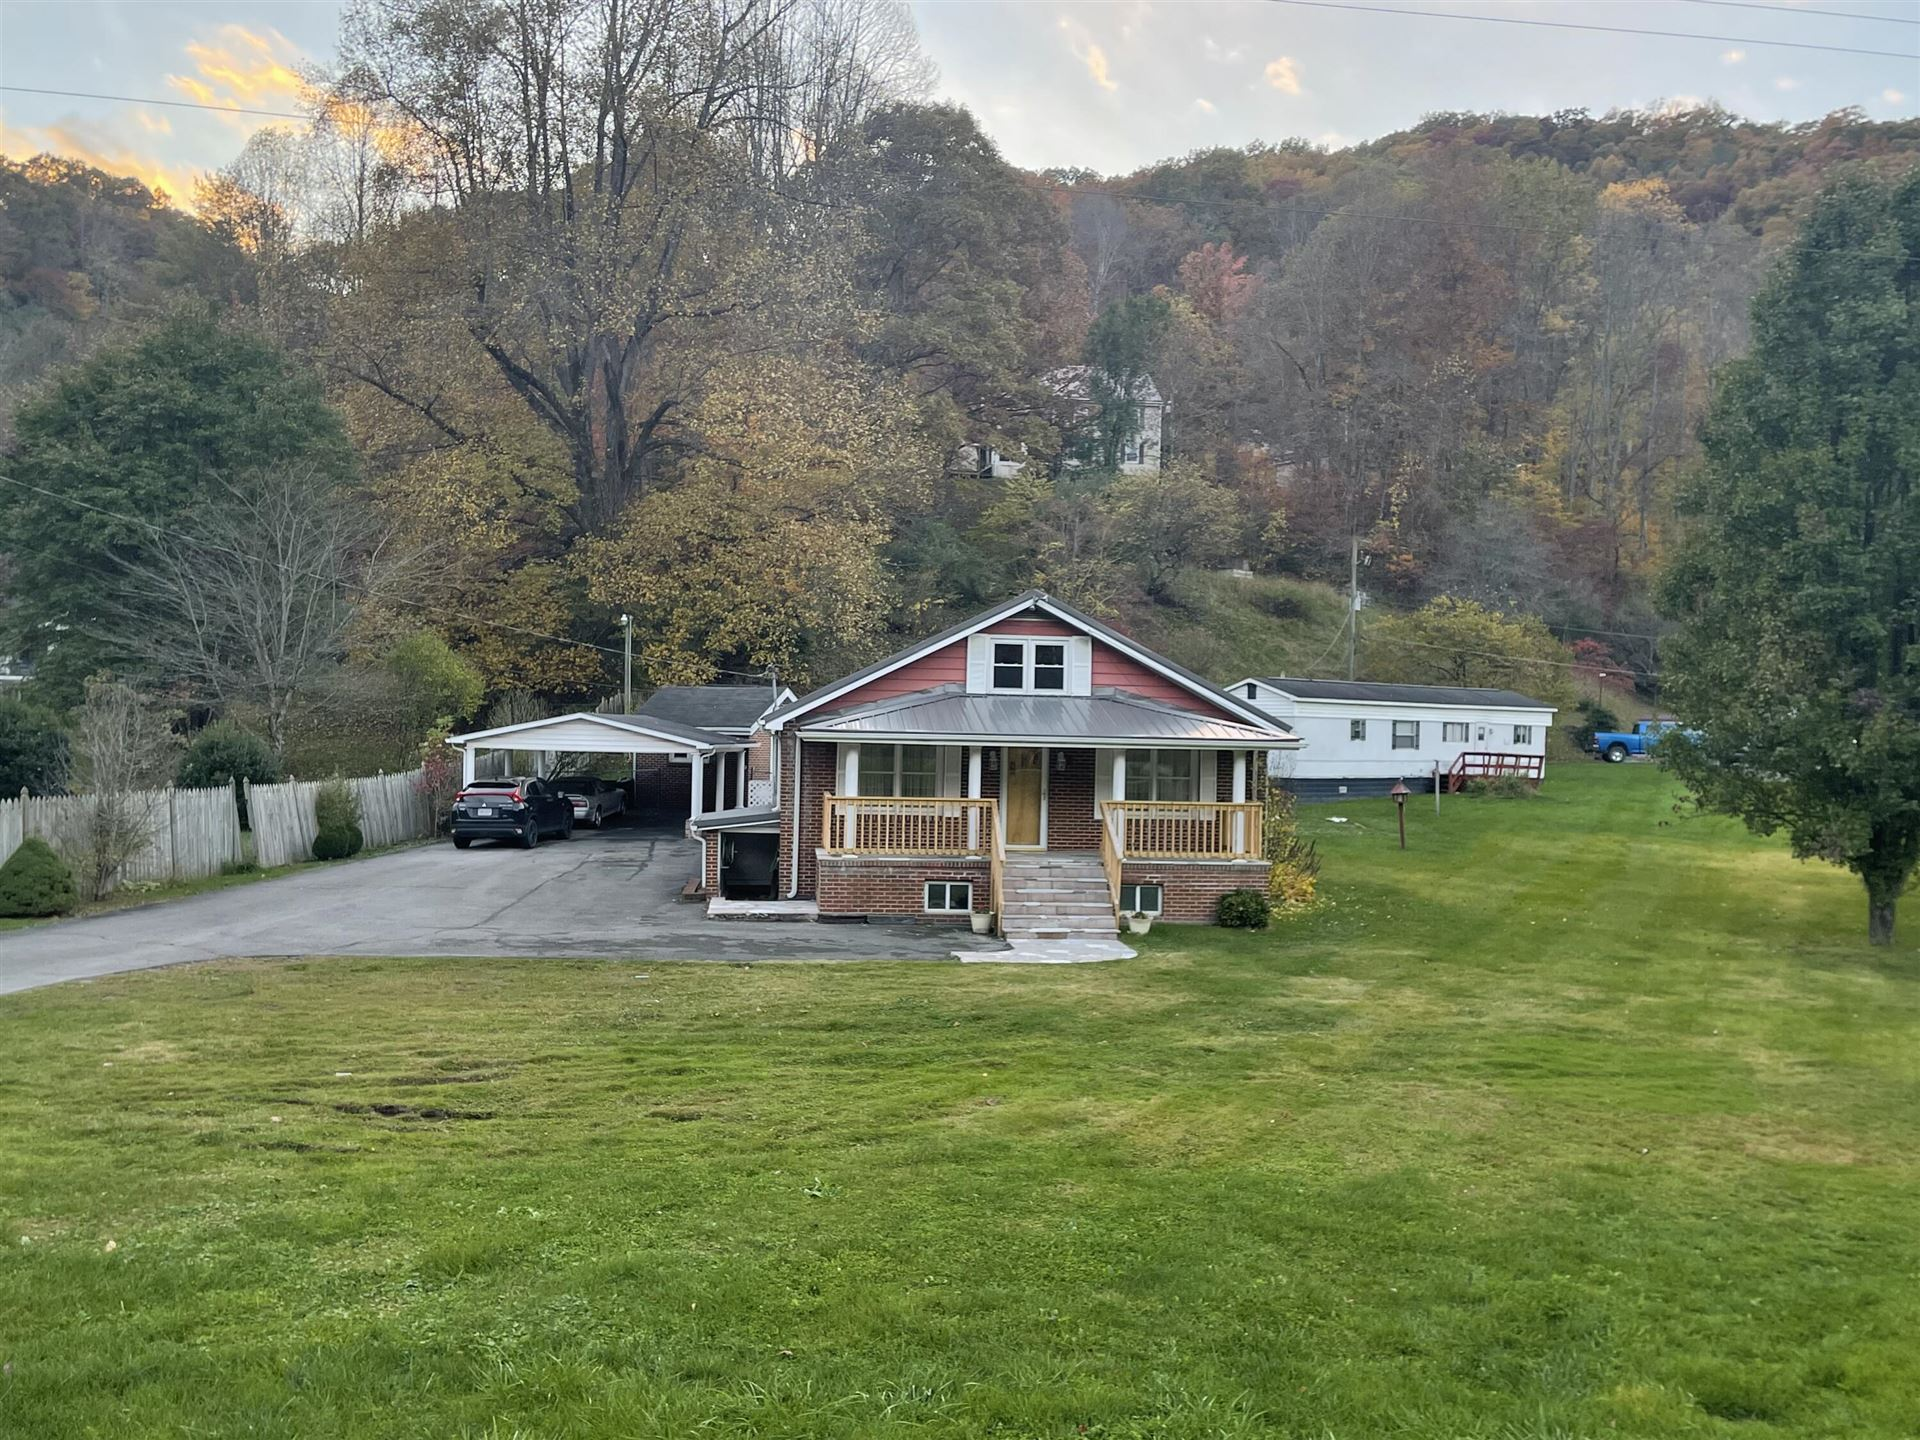 Photo of 9051 Orby Cantrell Highway, Pound, VA 24279 (MLS # 9930358)